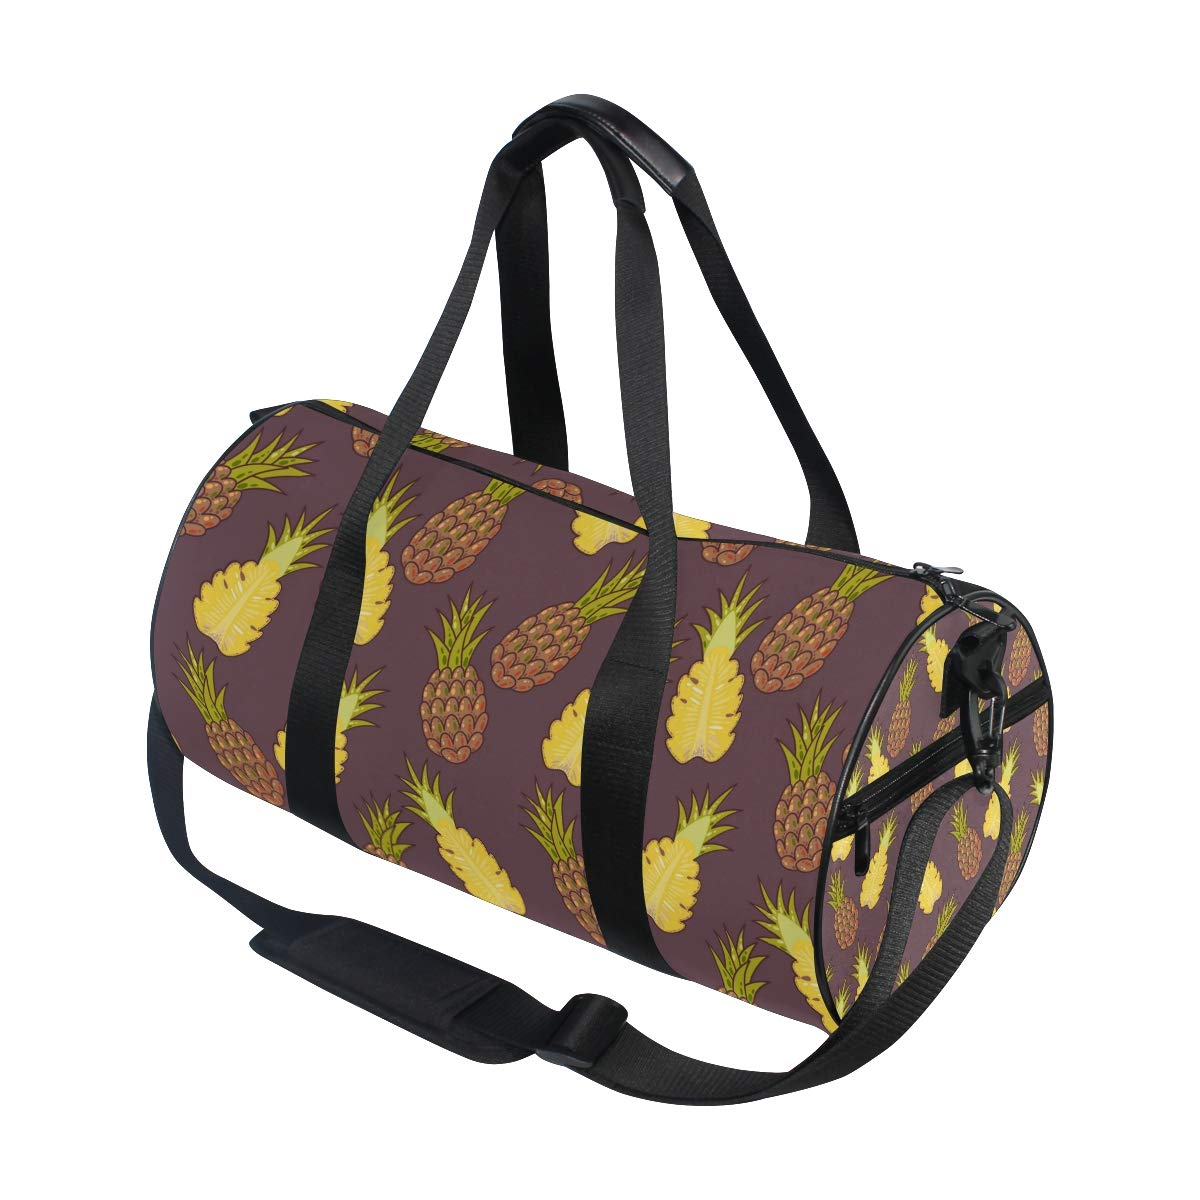 Waterproof Non-Slip Wearable Crossbody Bag fitness bag Shoulder Bag Bare Dried Fruit Picture